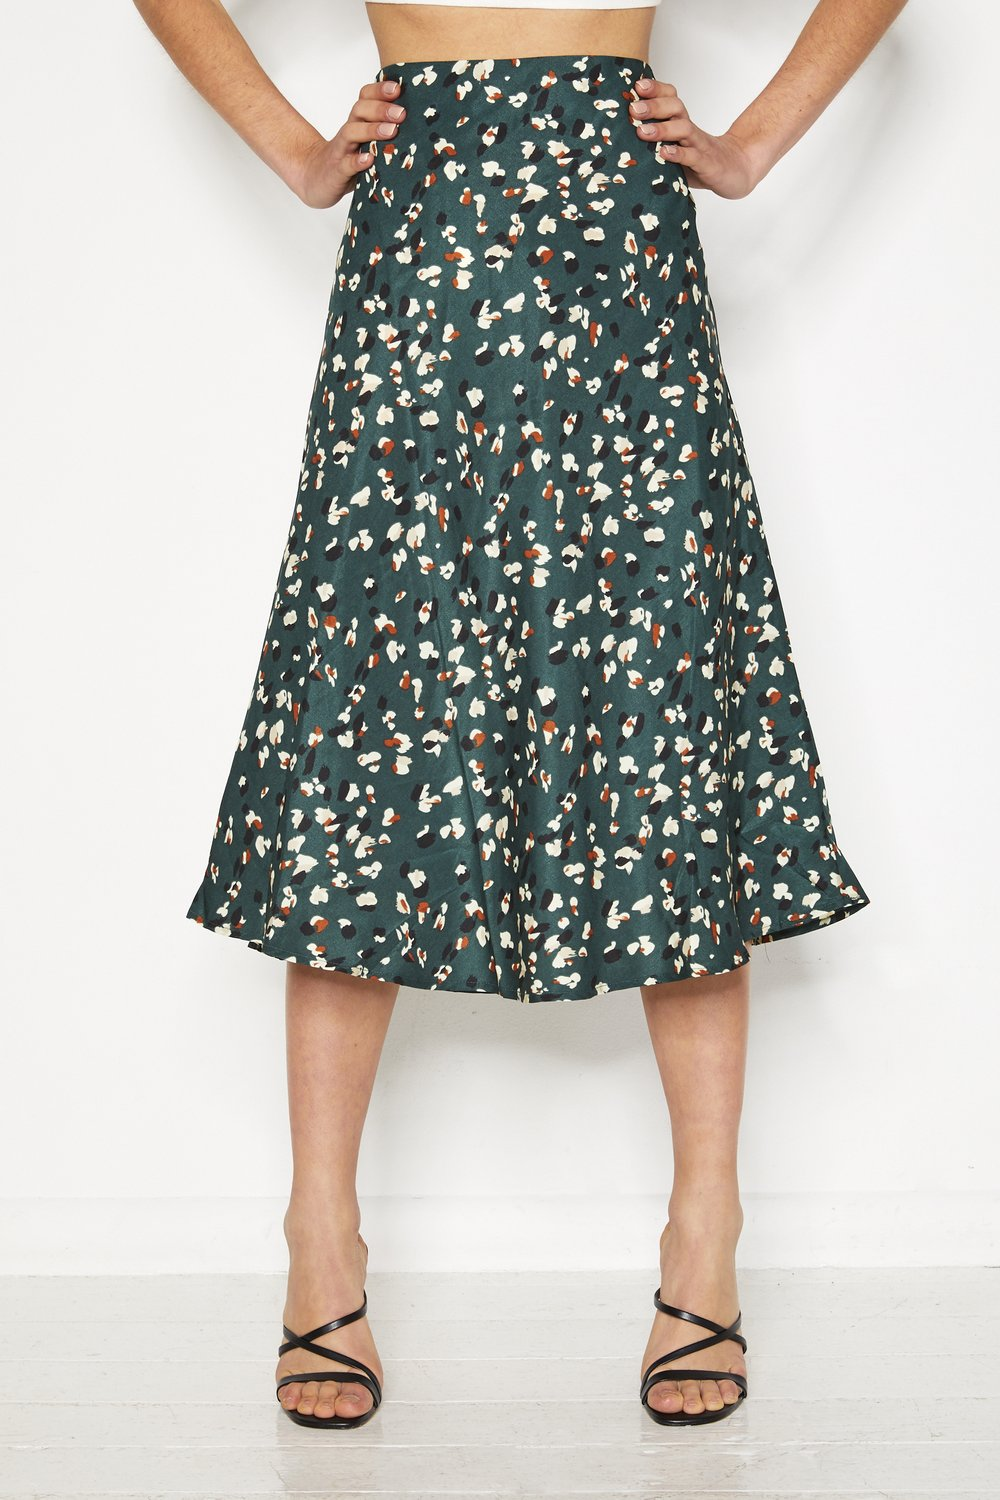 Aurora Skirt - Green